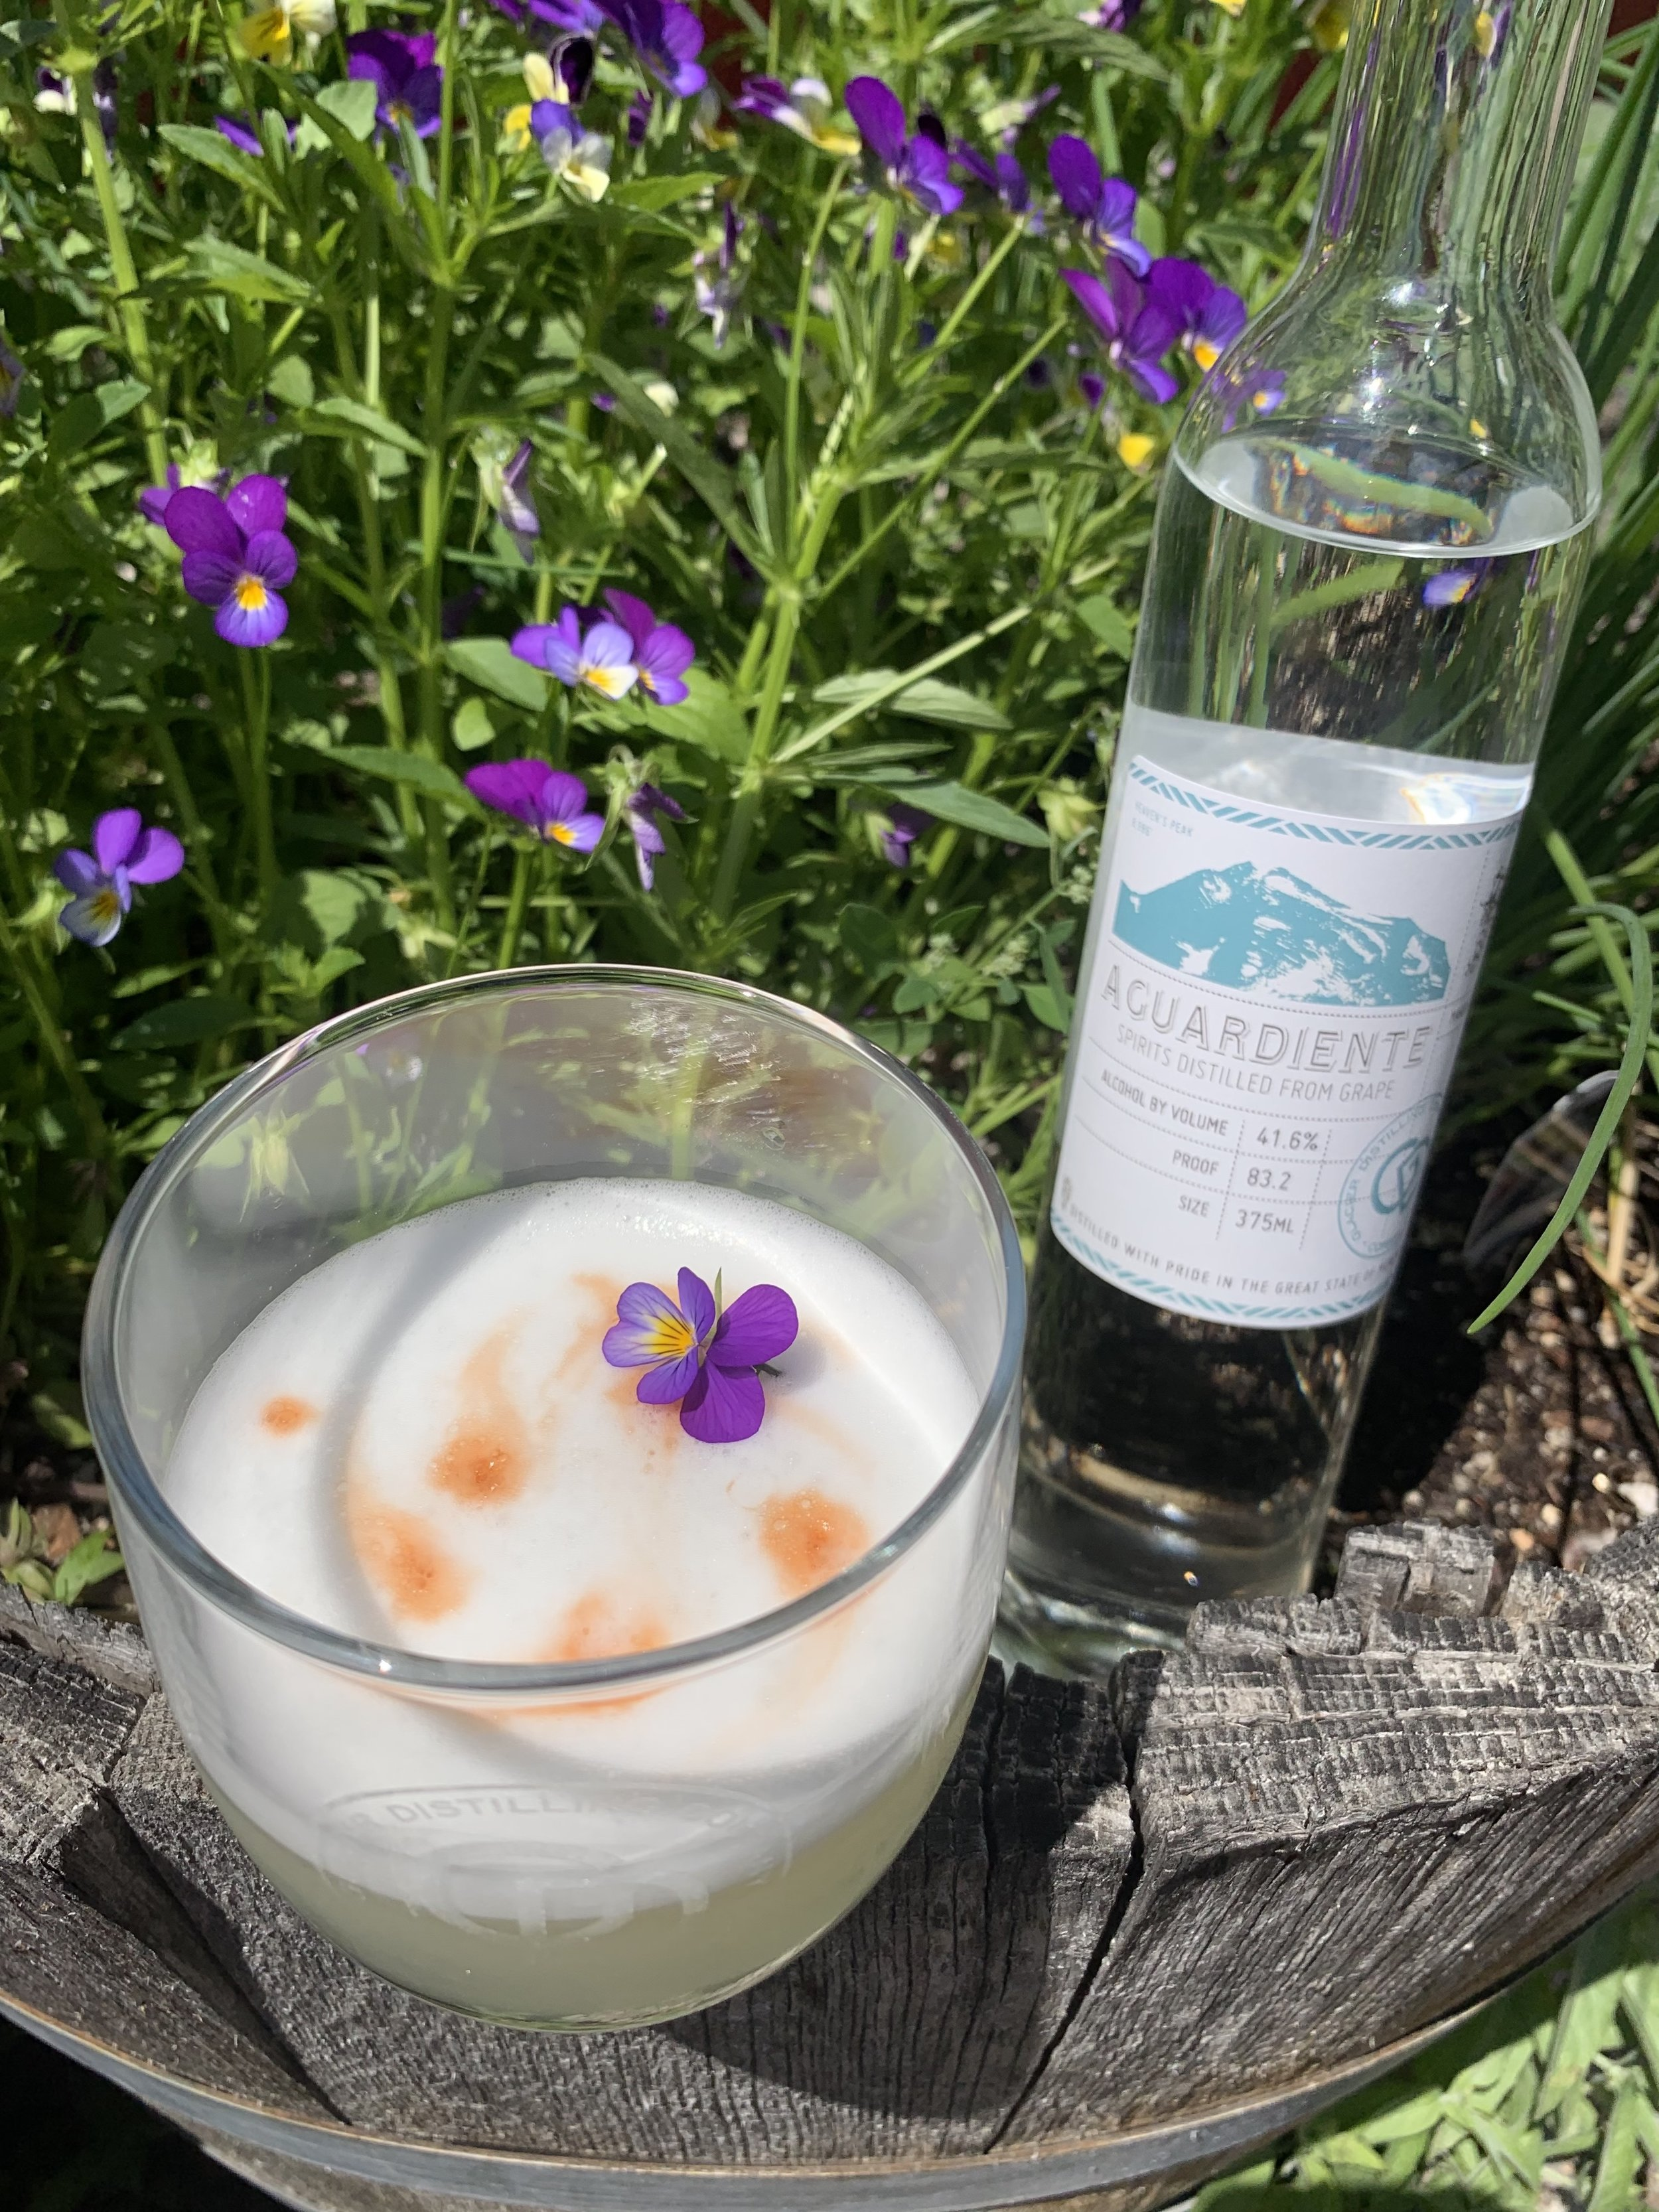 Taste Aguardiente in a Pisco Sour - on special now at The Whiskey Barn.